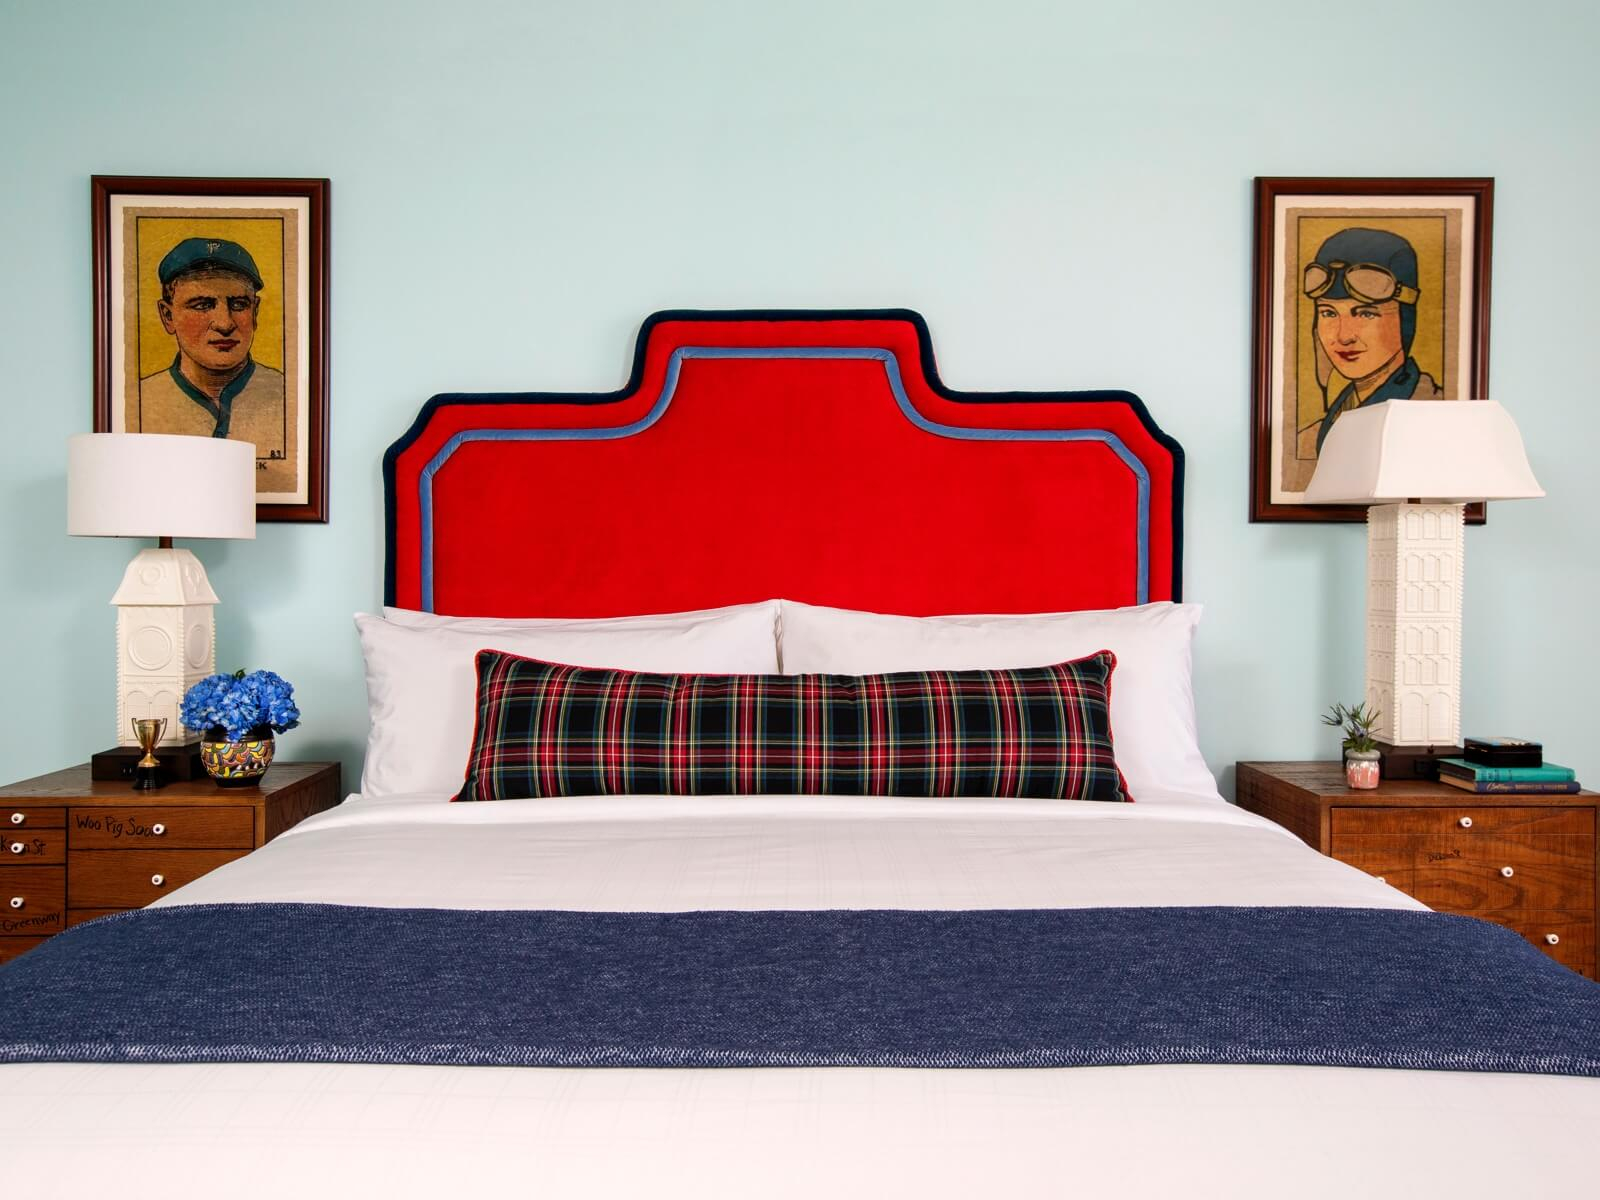 King Bed in Hotel Room